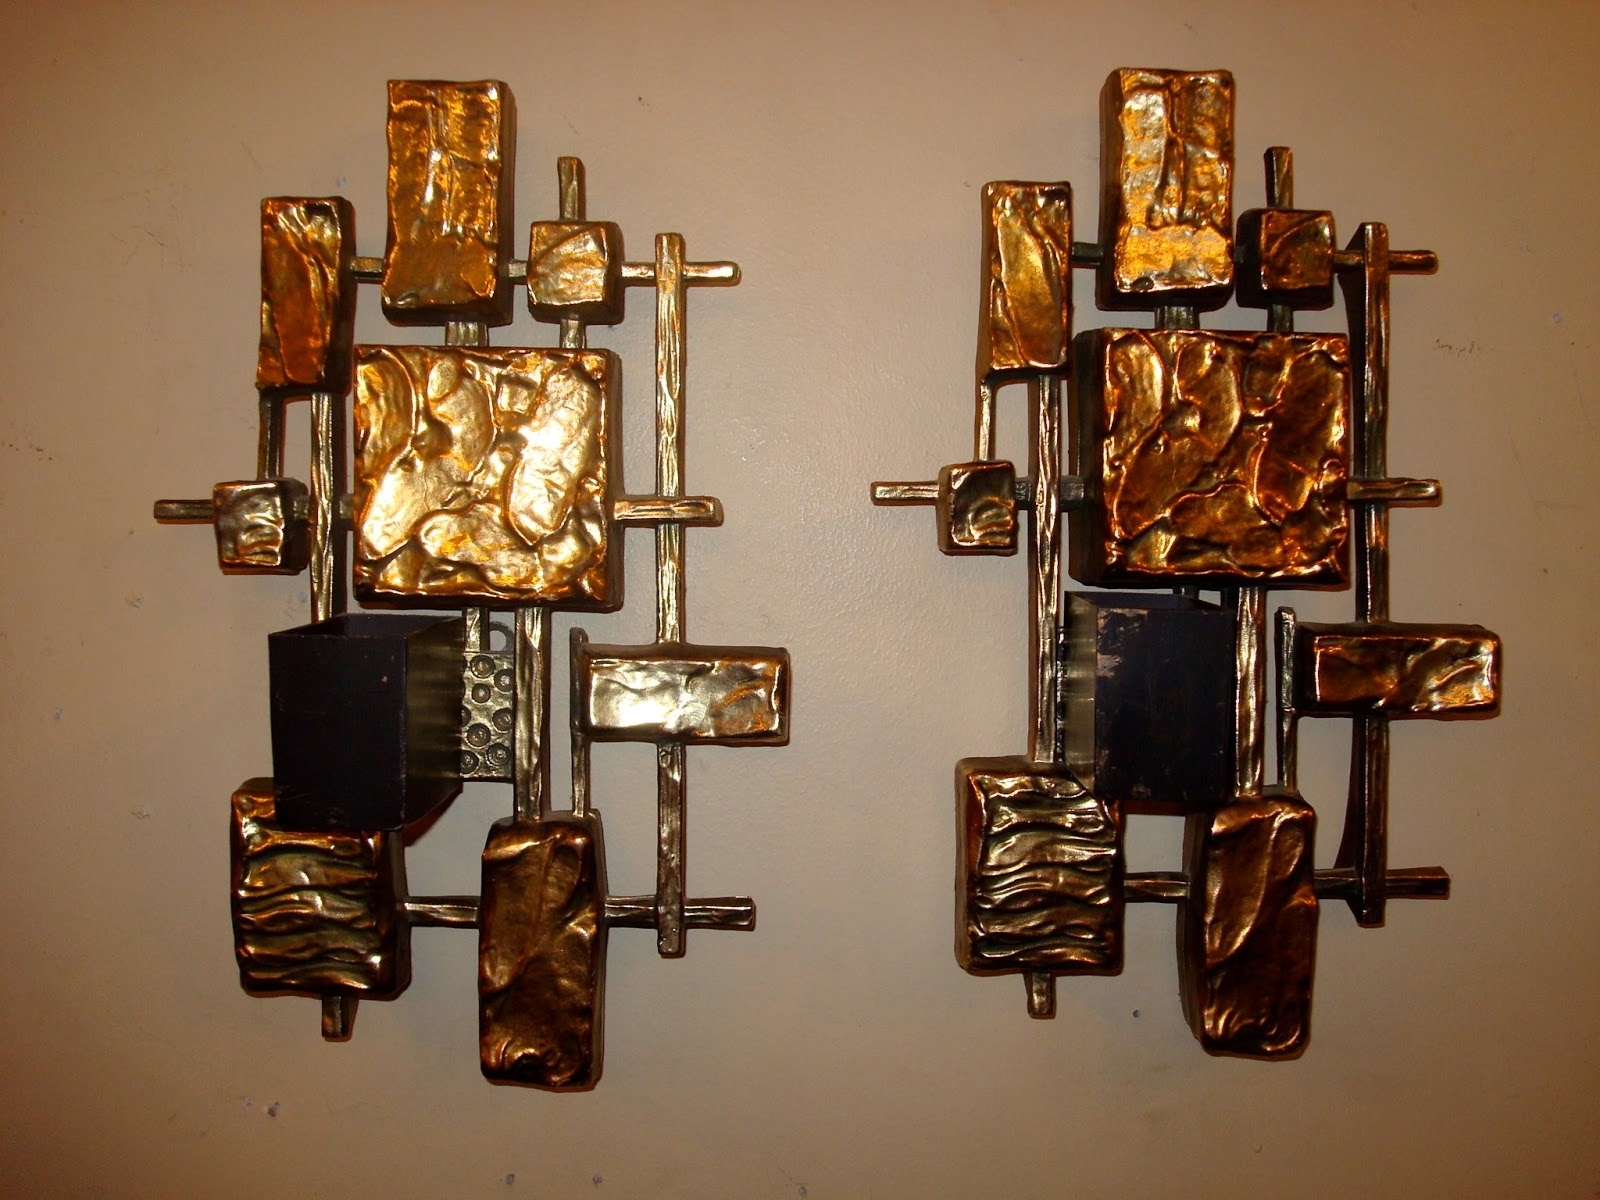 Wall Mounted Candle Chandeliers Intended For Well Liked Awesome Decorative Wall Sconces 2017 Design – Wall Sconce Lighting (View 12 of 15)